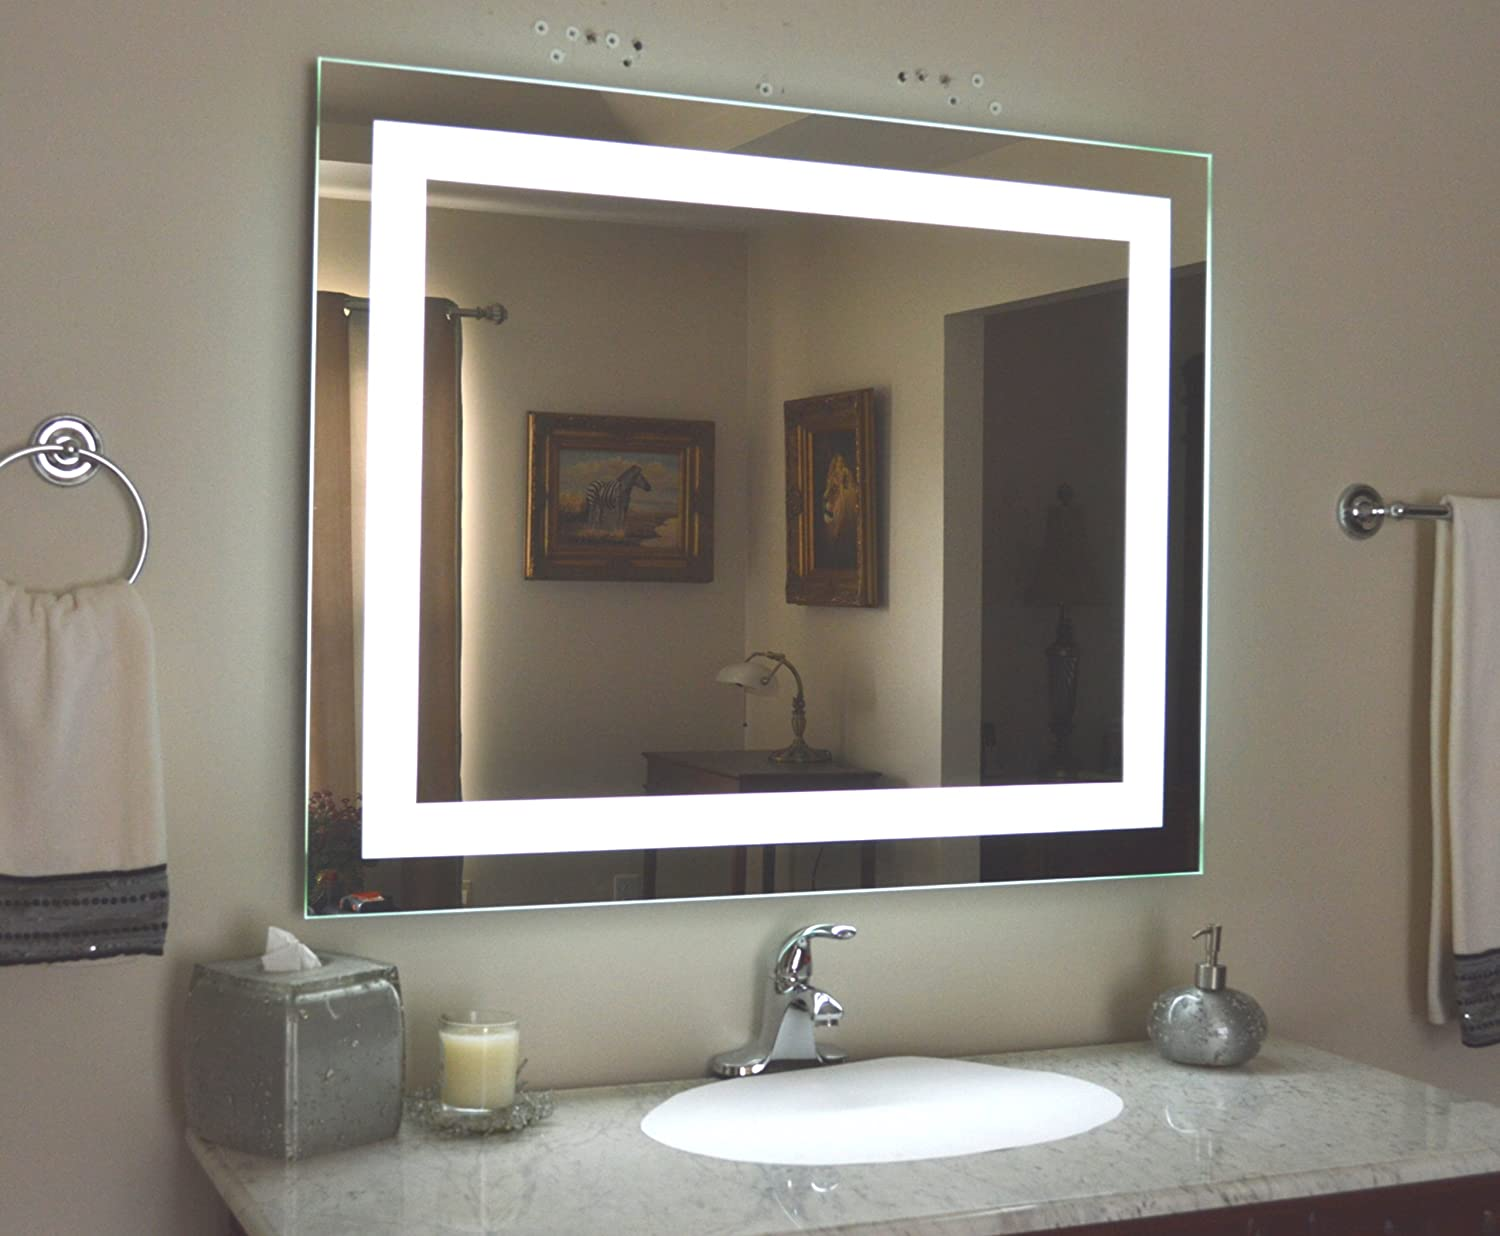 Amazon wall mounted lighted vanity mirror led mam84032 amazon wall mounted lighted vanity mirror led mam84032 commercial grade 40 home kitchen mozeypictures